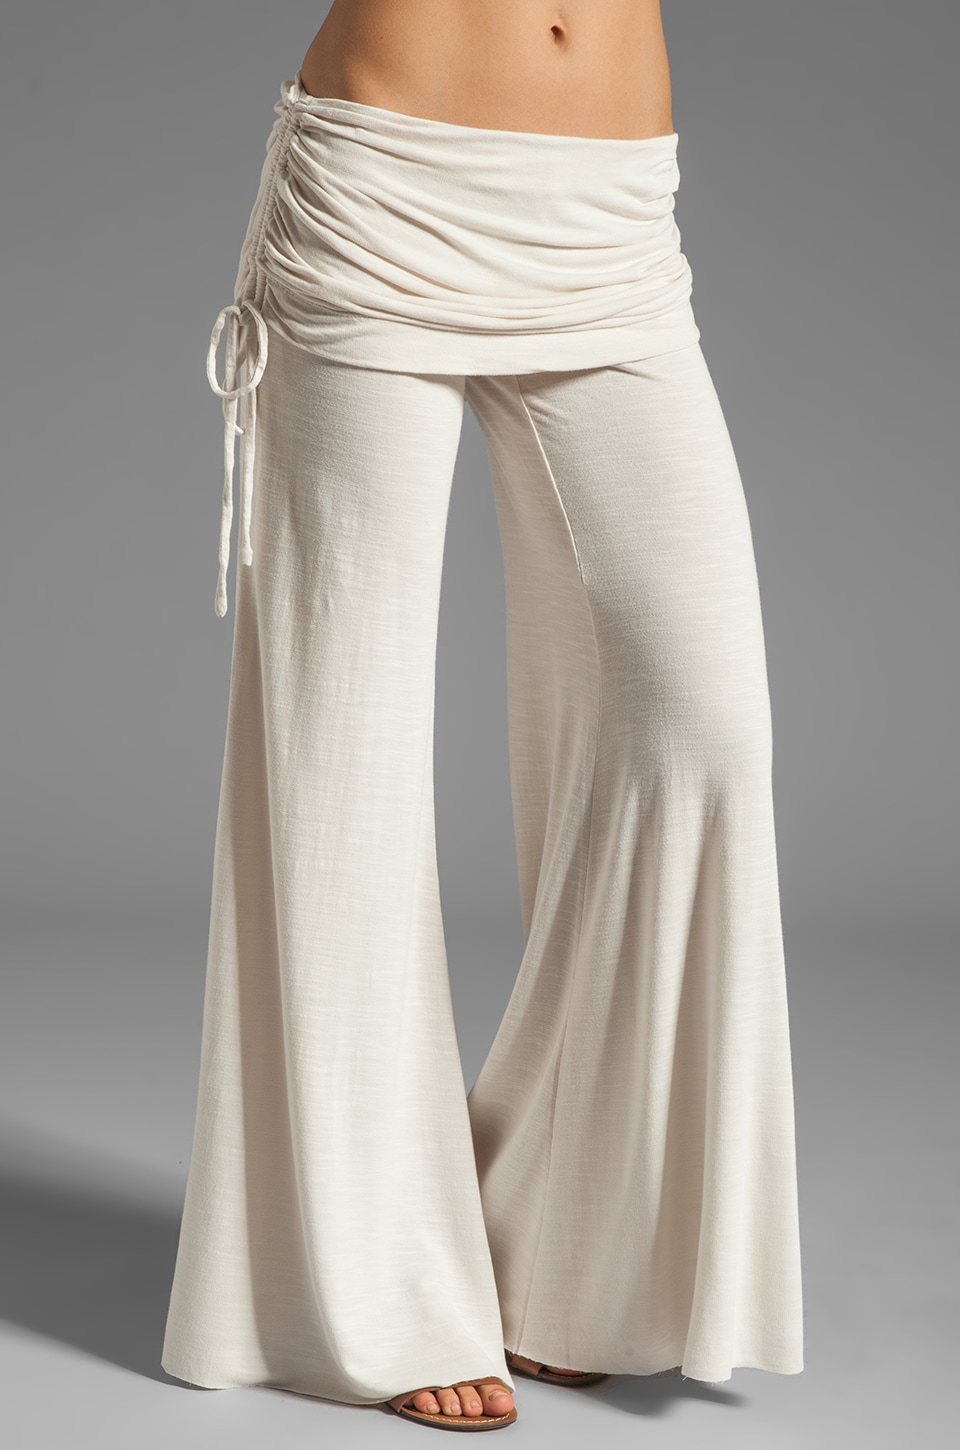 Young, Fabulous & Broke Sierra Pant in Creme